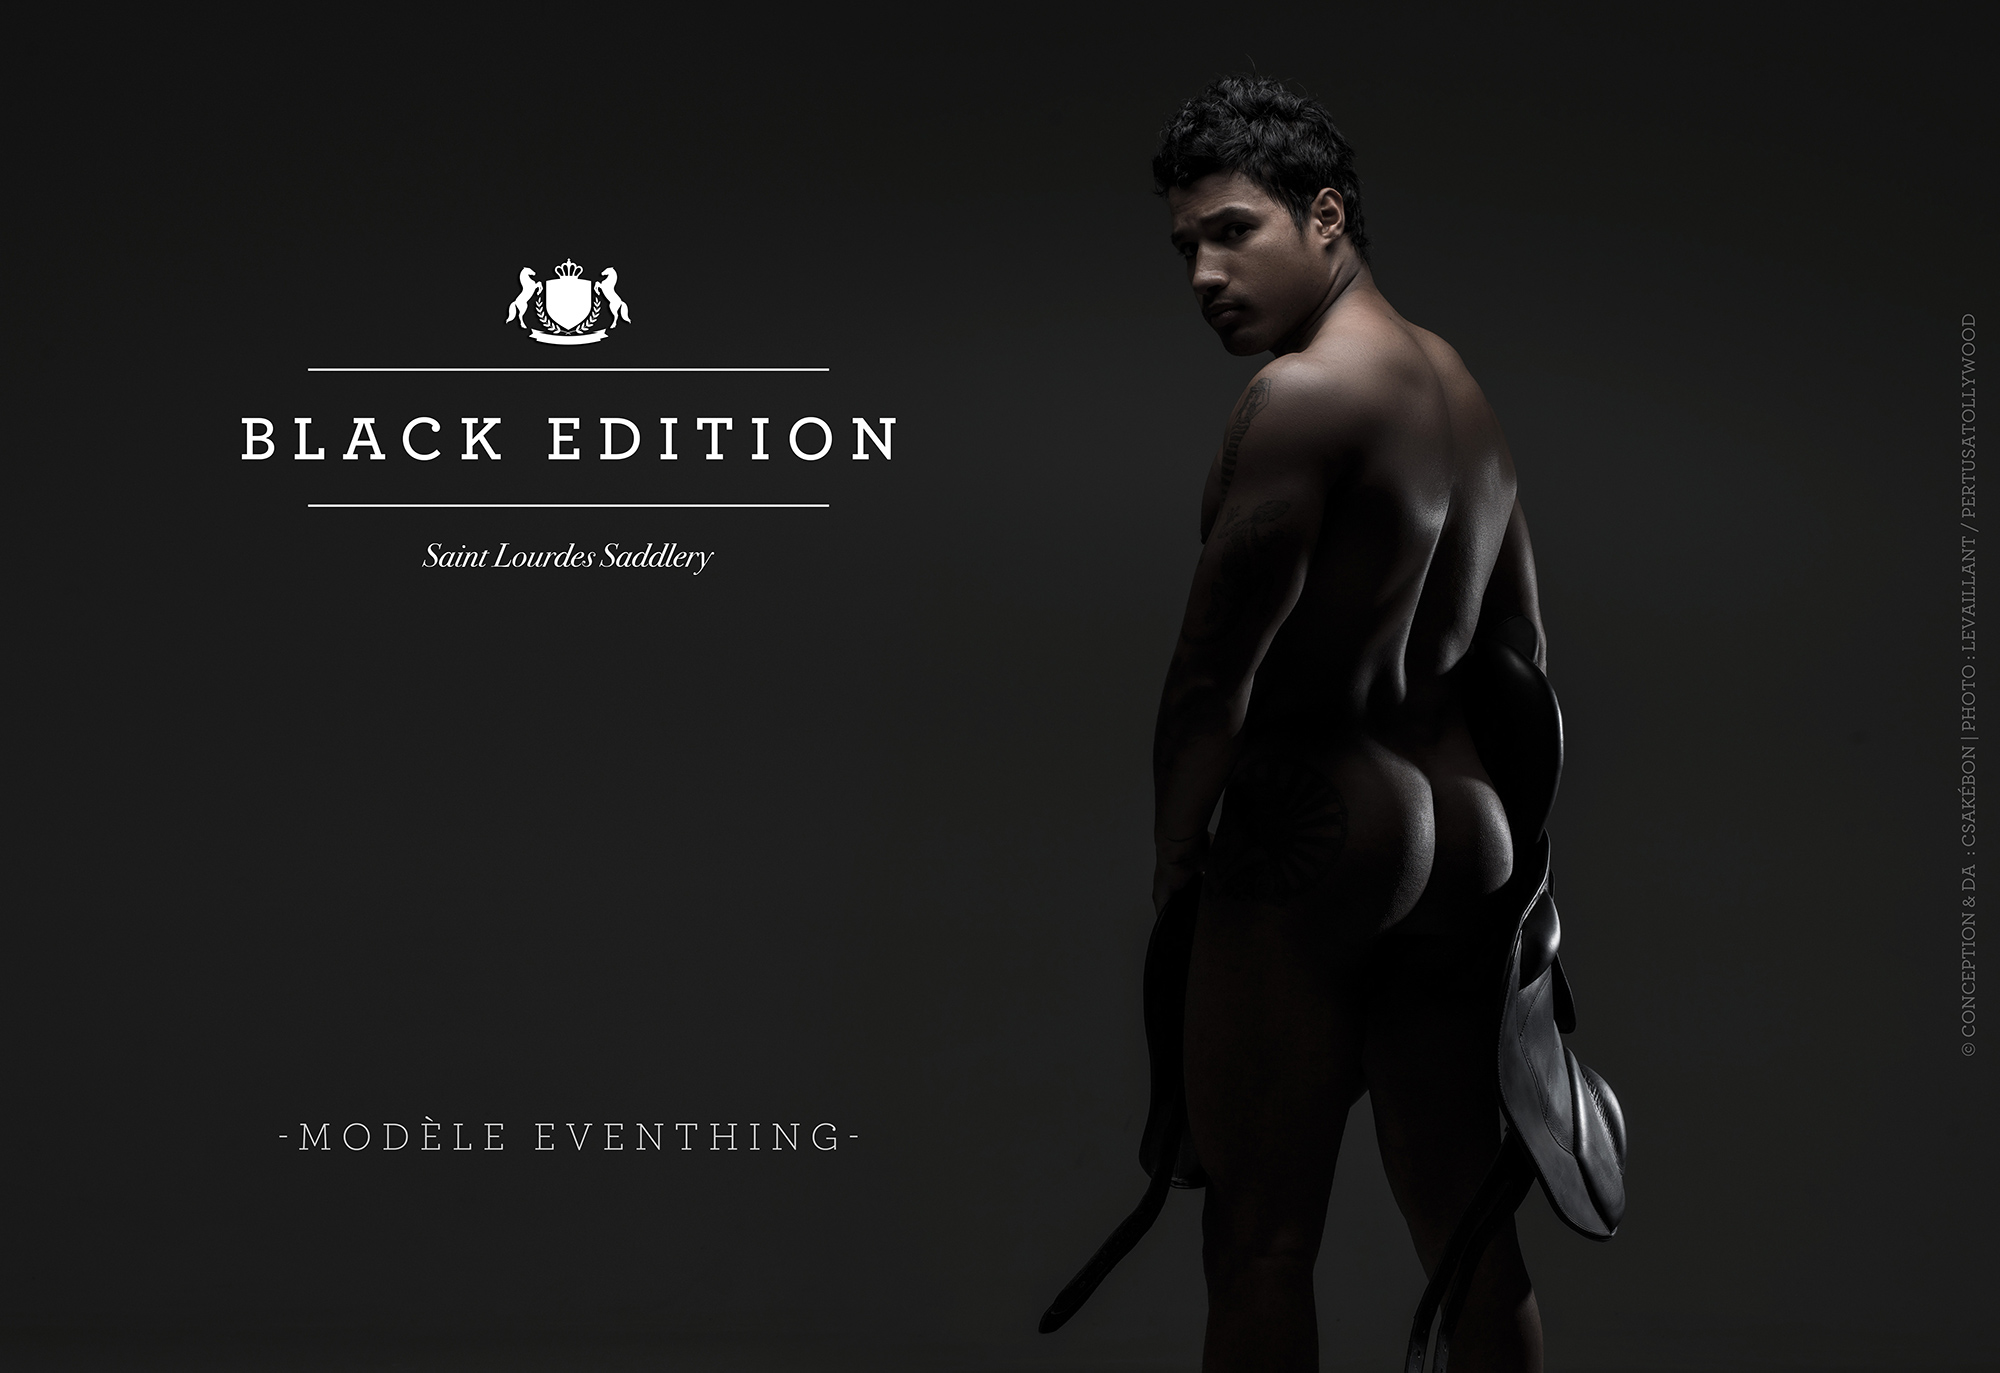 Csakébon - Black Edition - Saint Lourdes Saddlery - All rights reserved